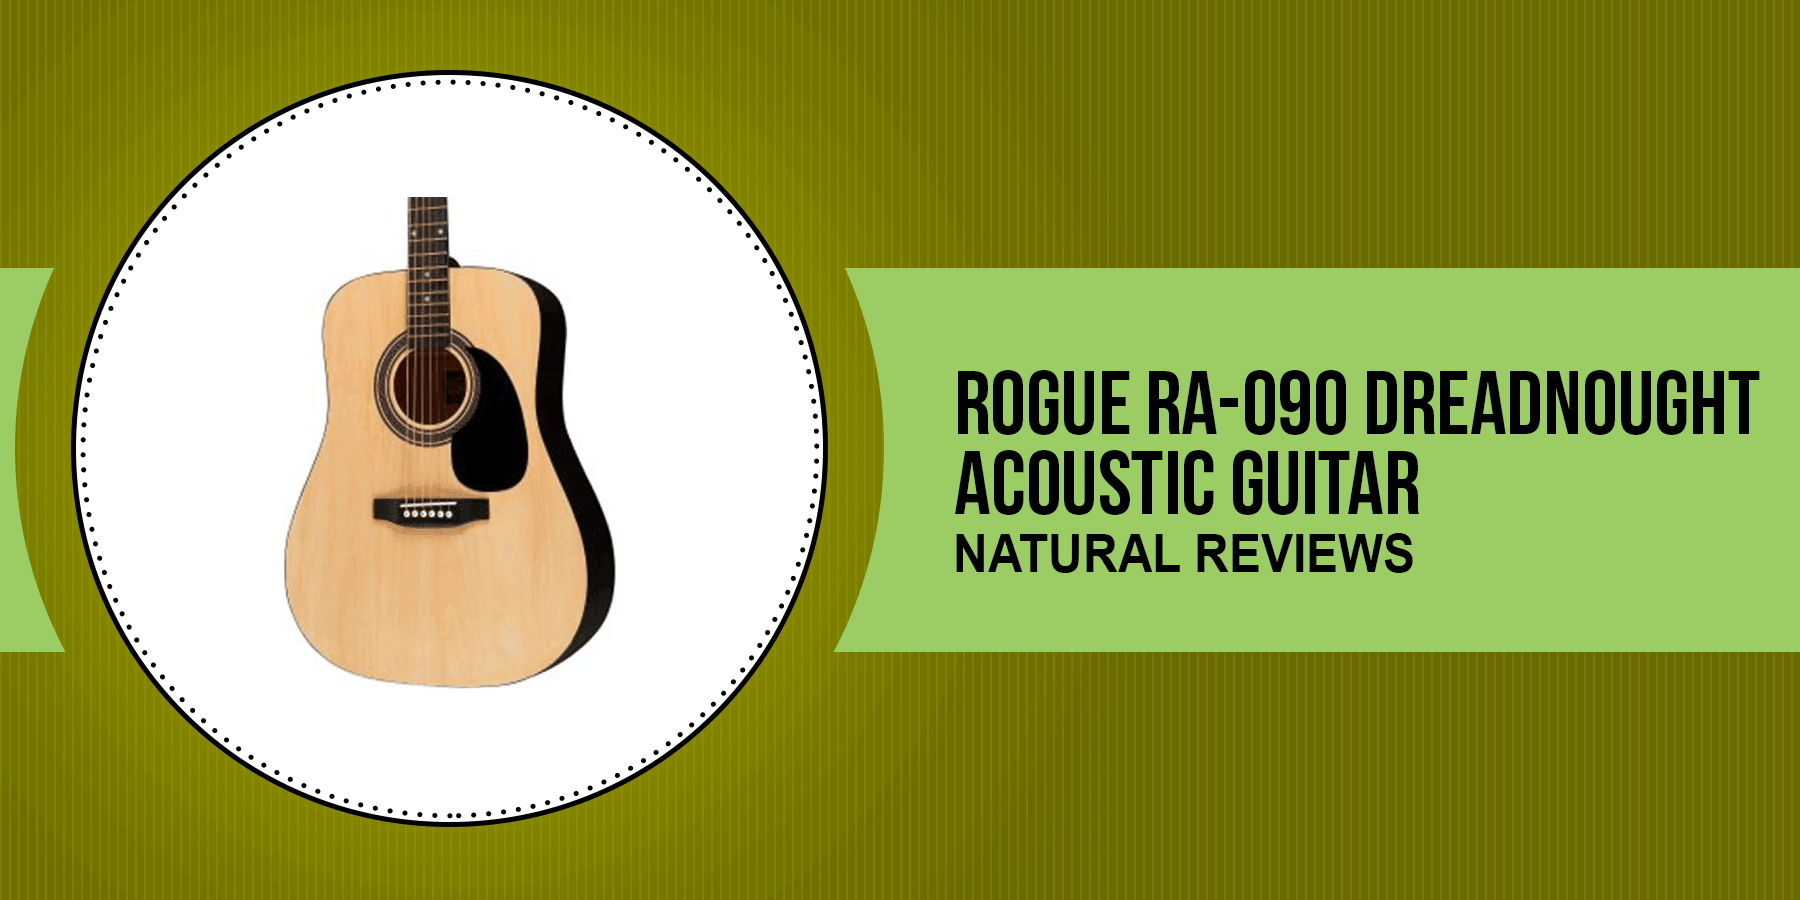 Rogue Ra-090 Dreadnought Guitar Natural Review